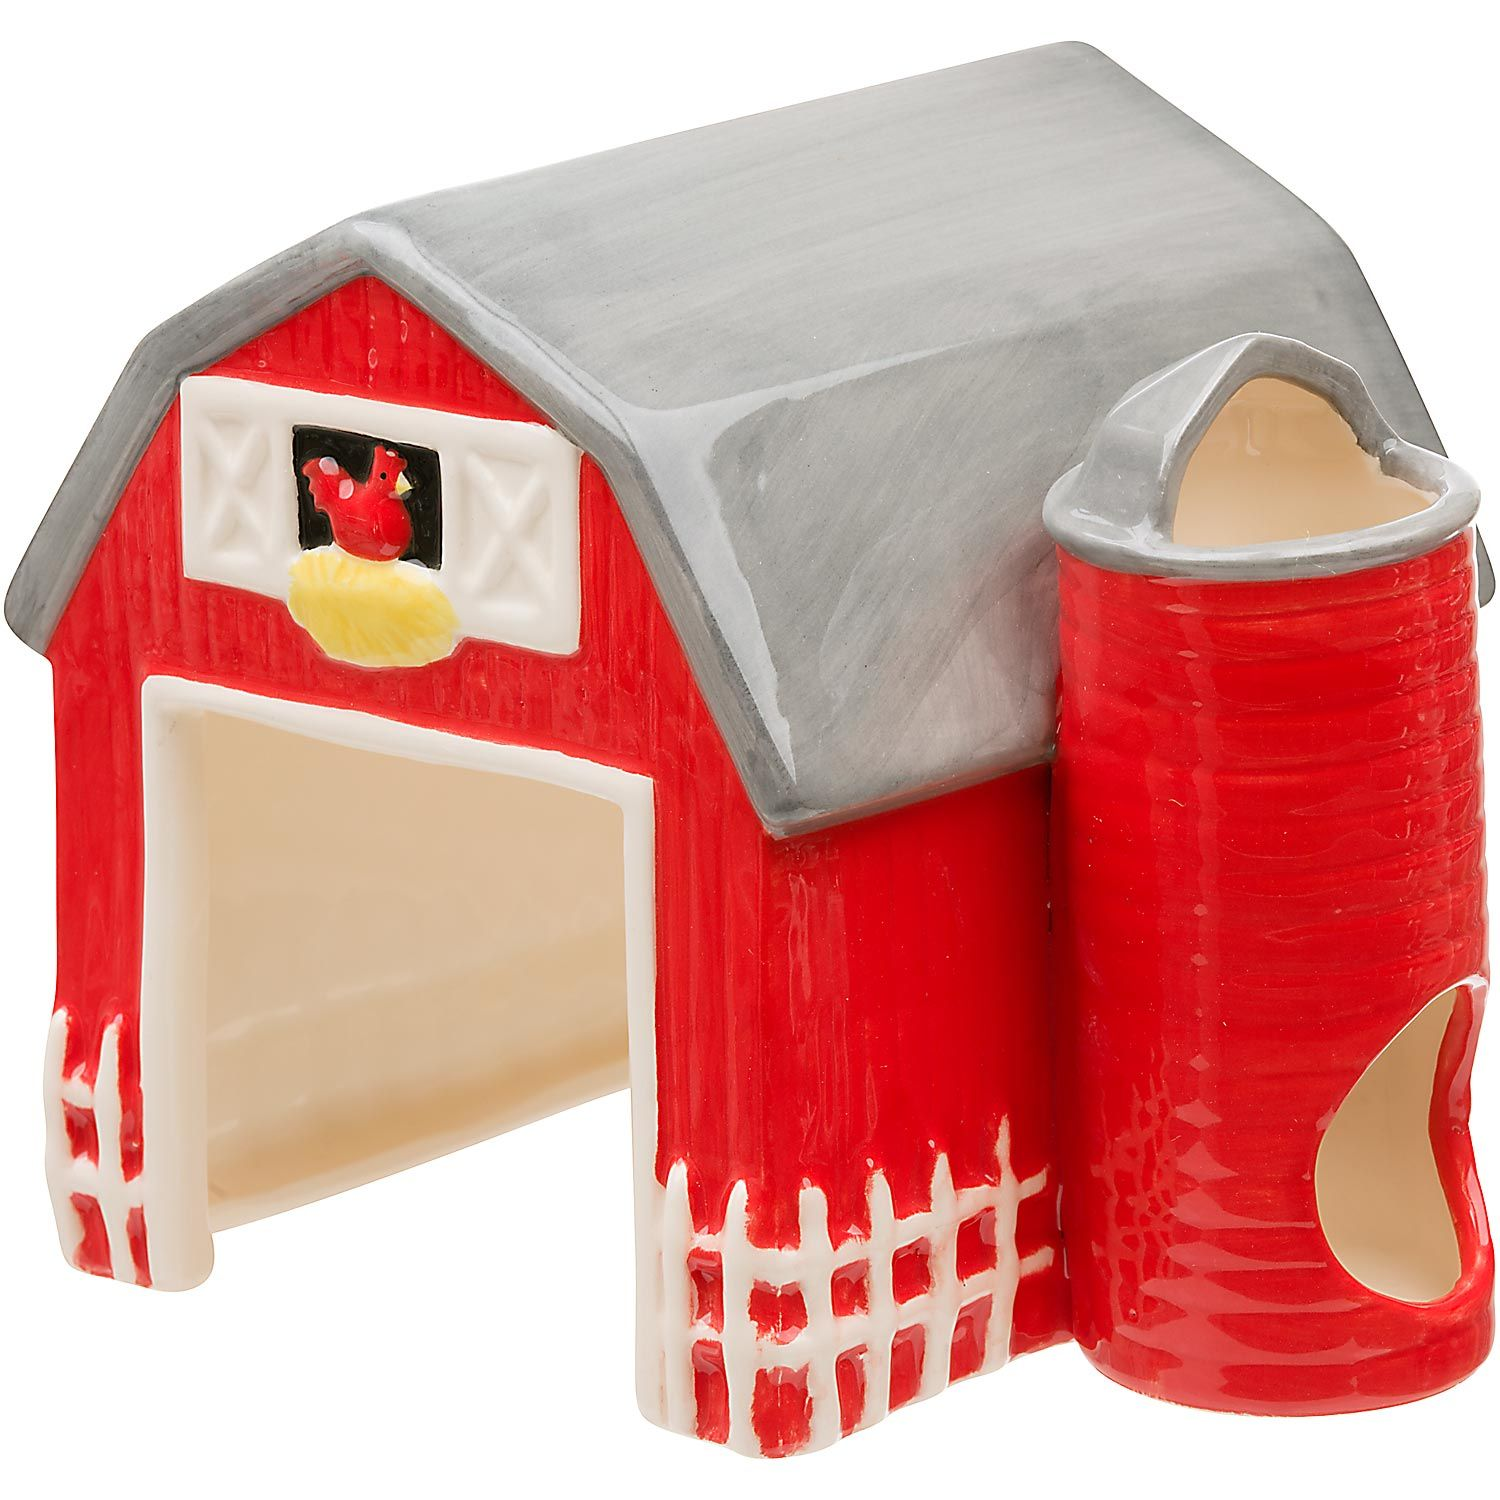 Petco Ceramic Red Barn Small Animal Hideaway Small Pets Pet Rodents Bird Toys